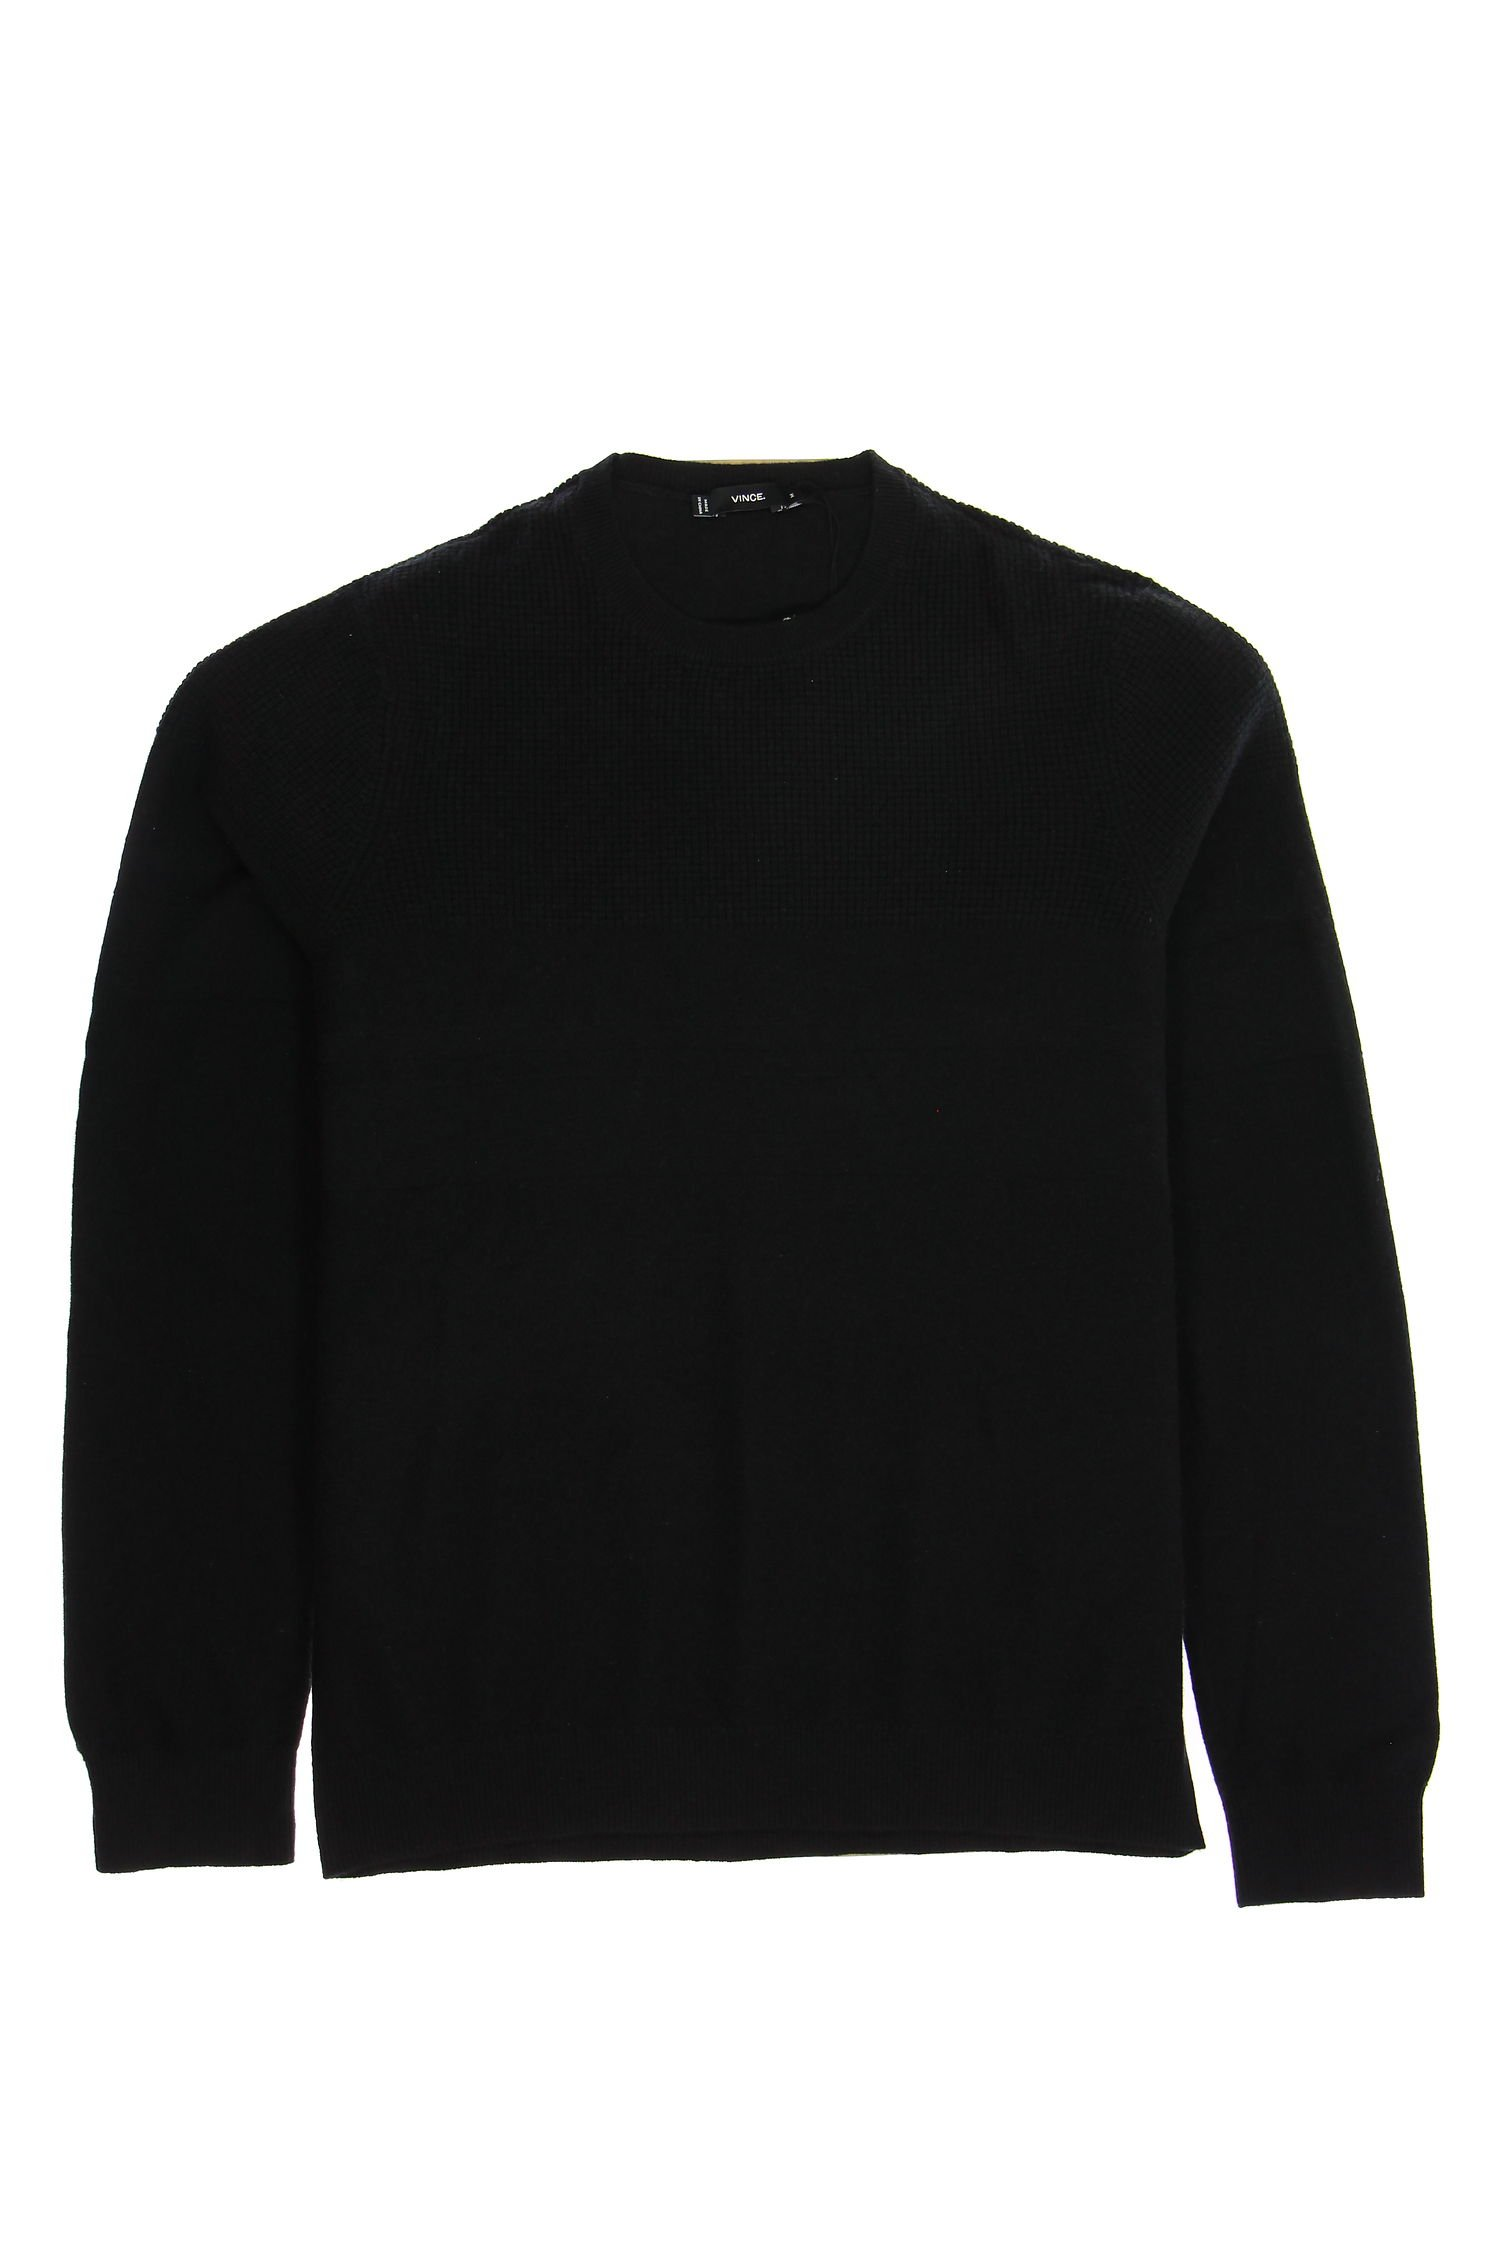 Vince Men's Mixed Texture Crew Sweater, Black, Medium